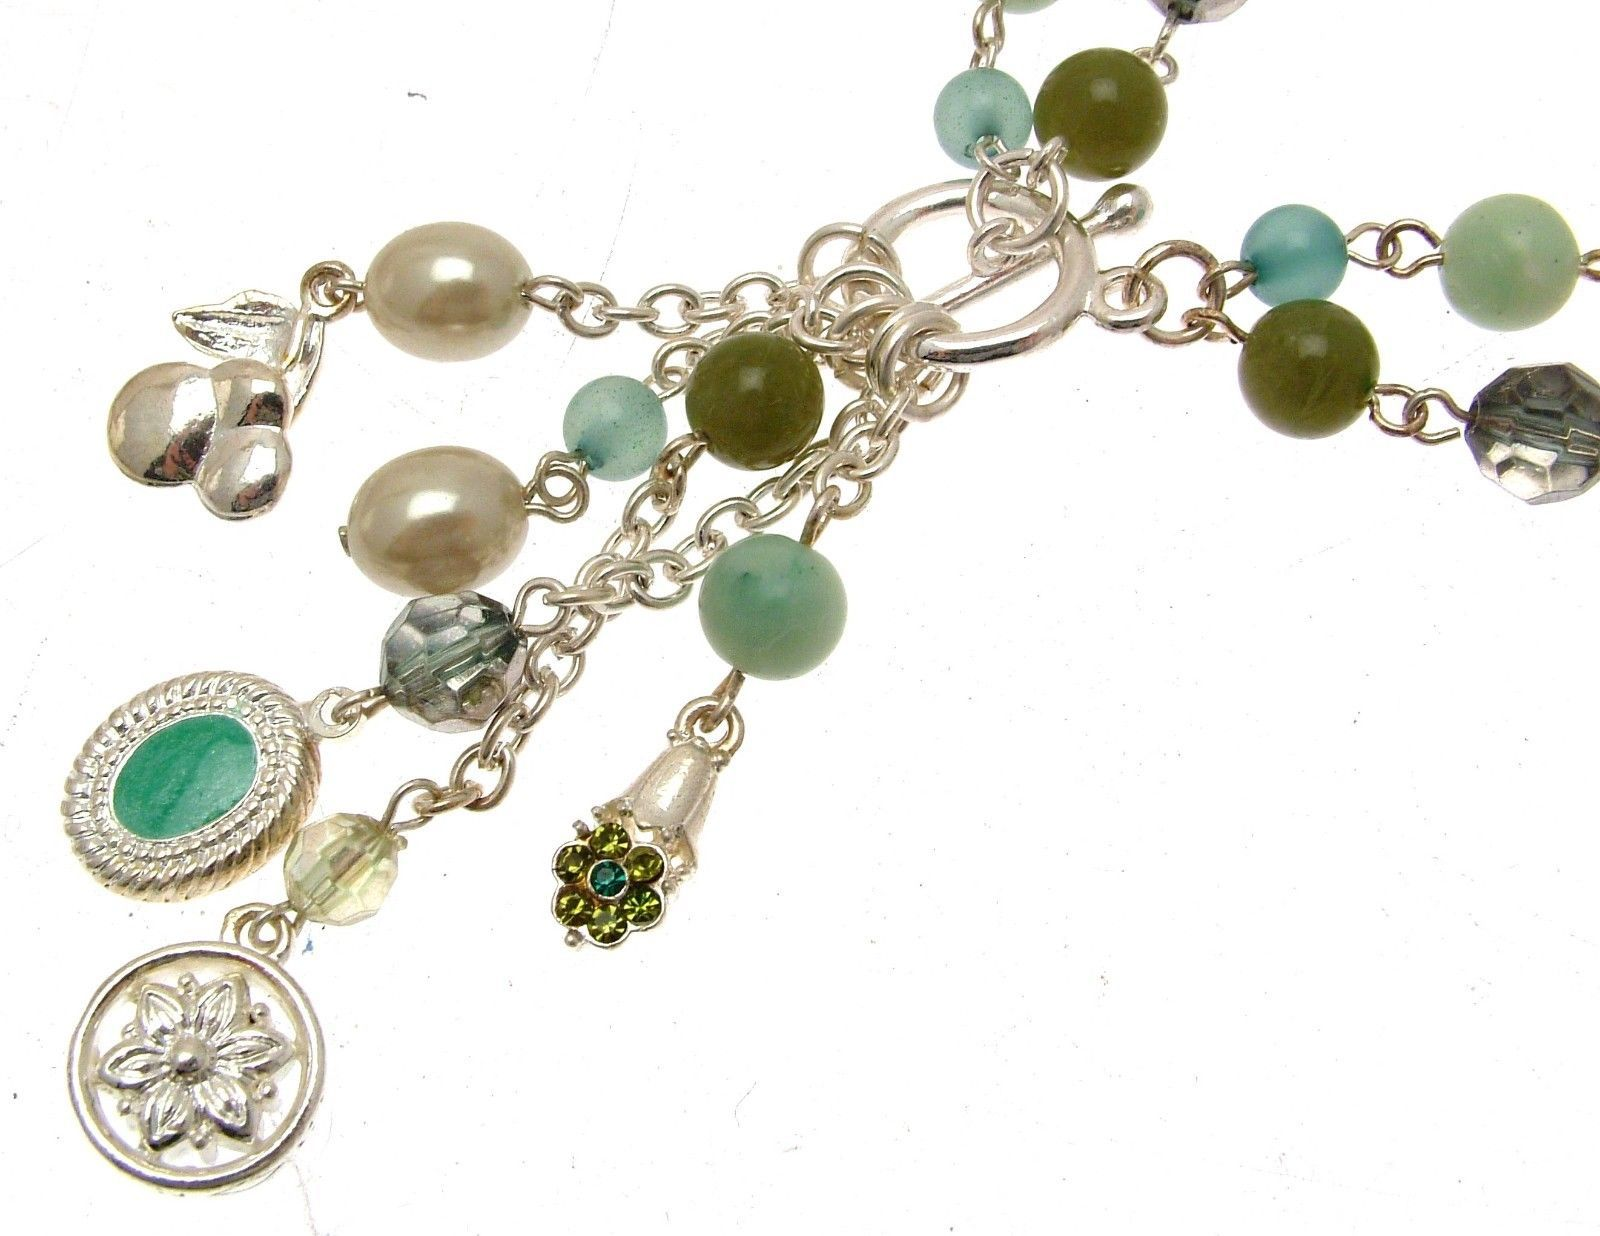 Beaded Necklaces Statement Necklaces For Women Green Beads